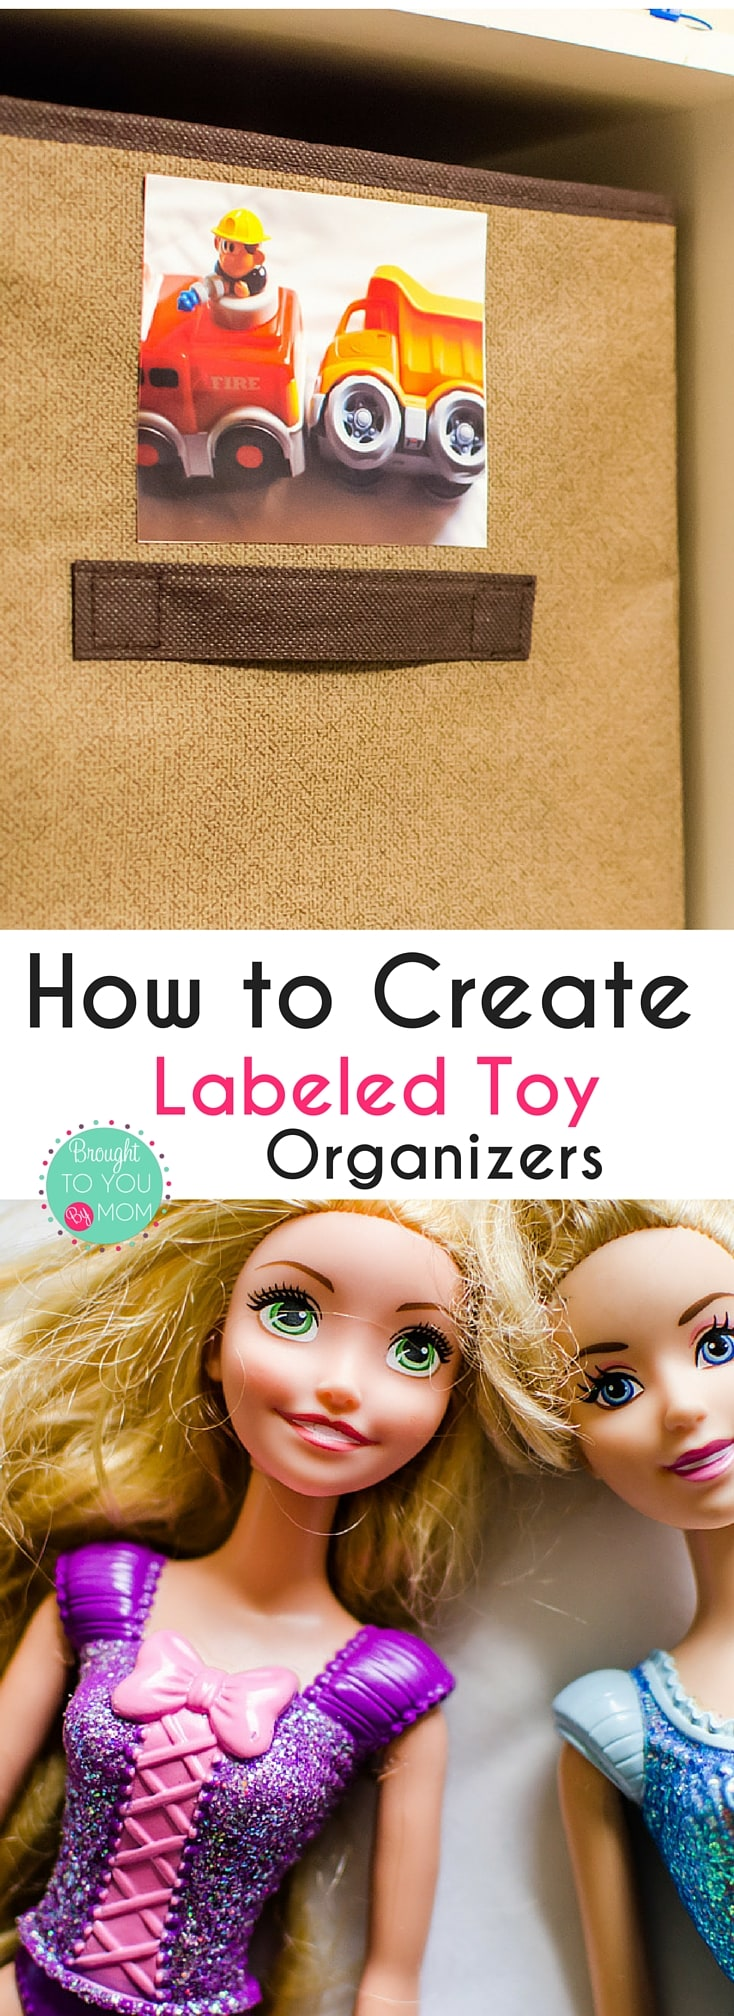 Need ideas of how to help kids pick up their toys? Check out how to create labeled toy organizers with these easy steps.